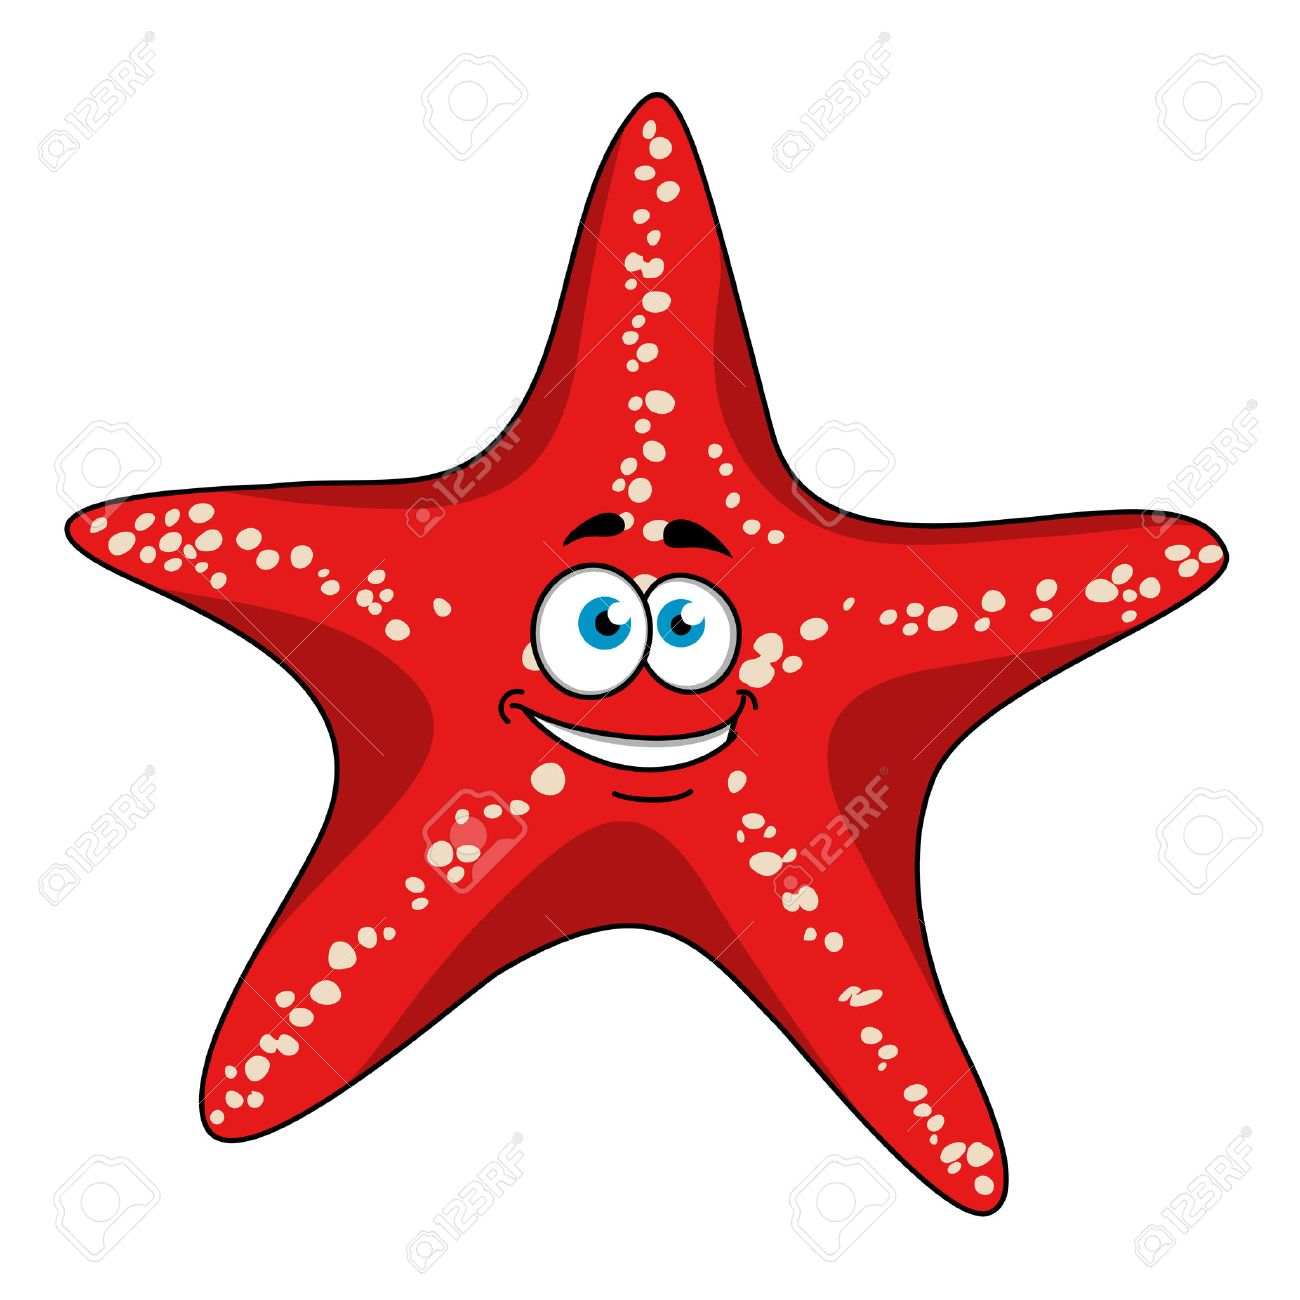 22afdce4134e Happy tropical bright red starfish cartoon character with white spots.  Isolated on white background for